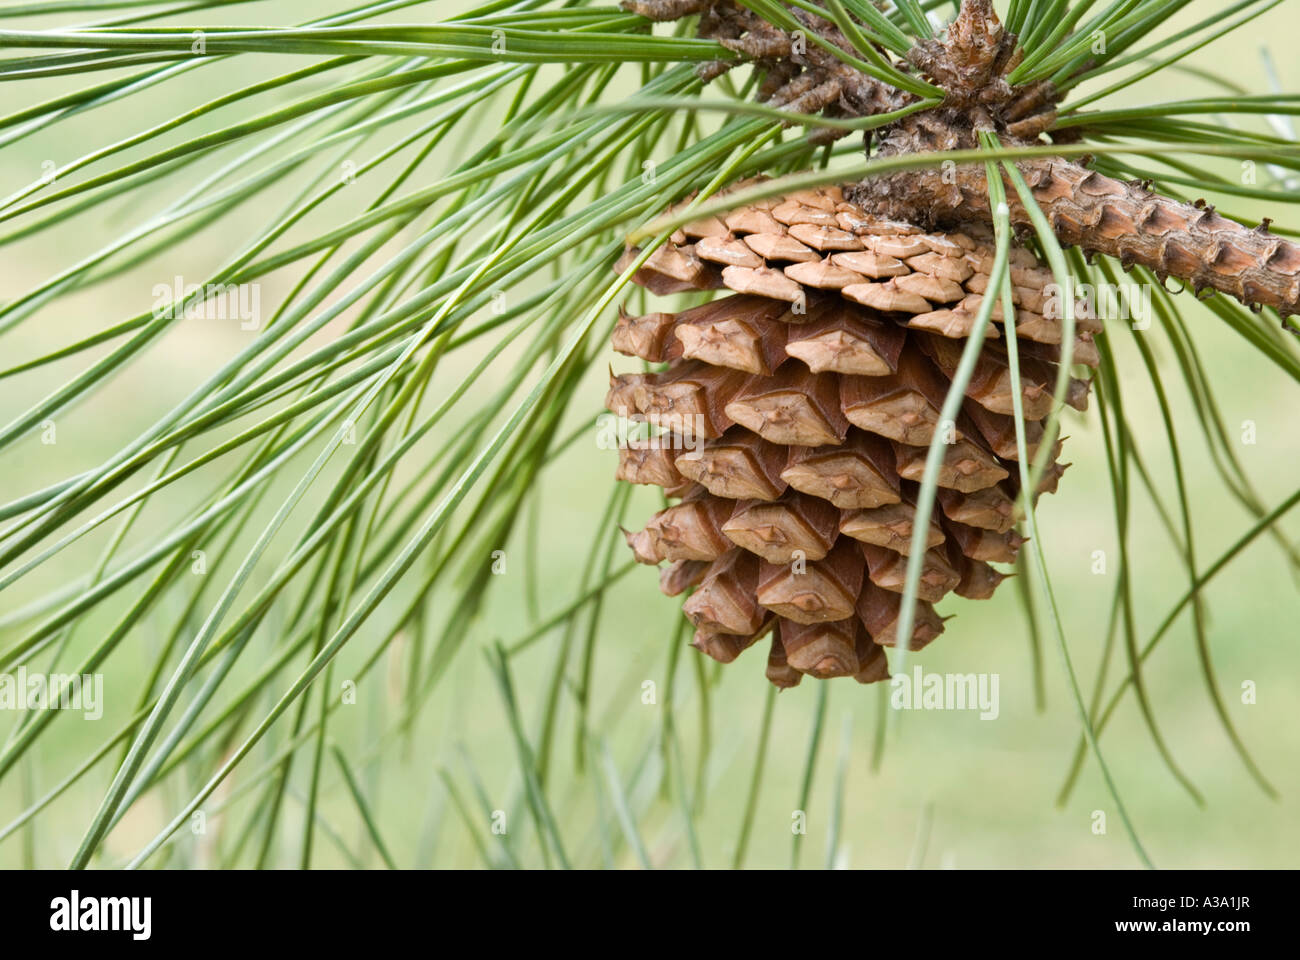 Pine Cone from Pitch Pine Tree - Stock Image